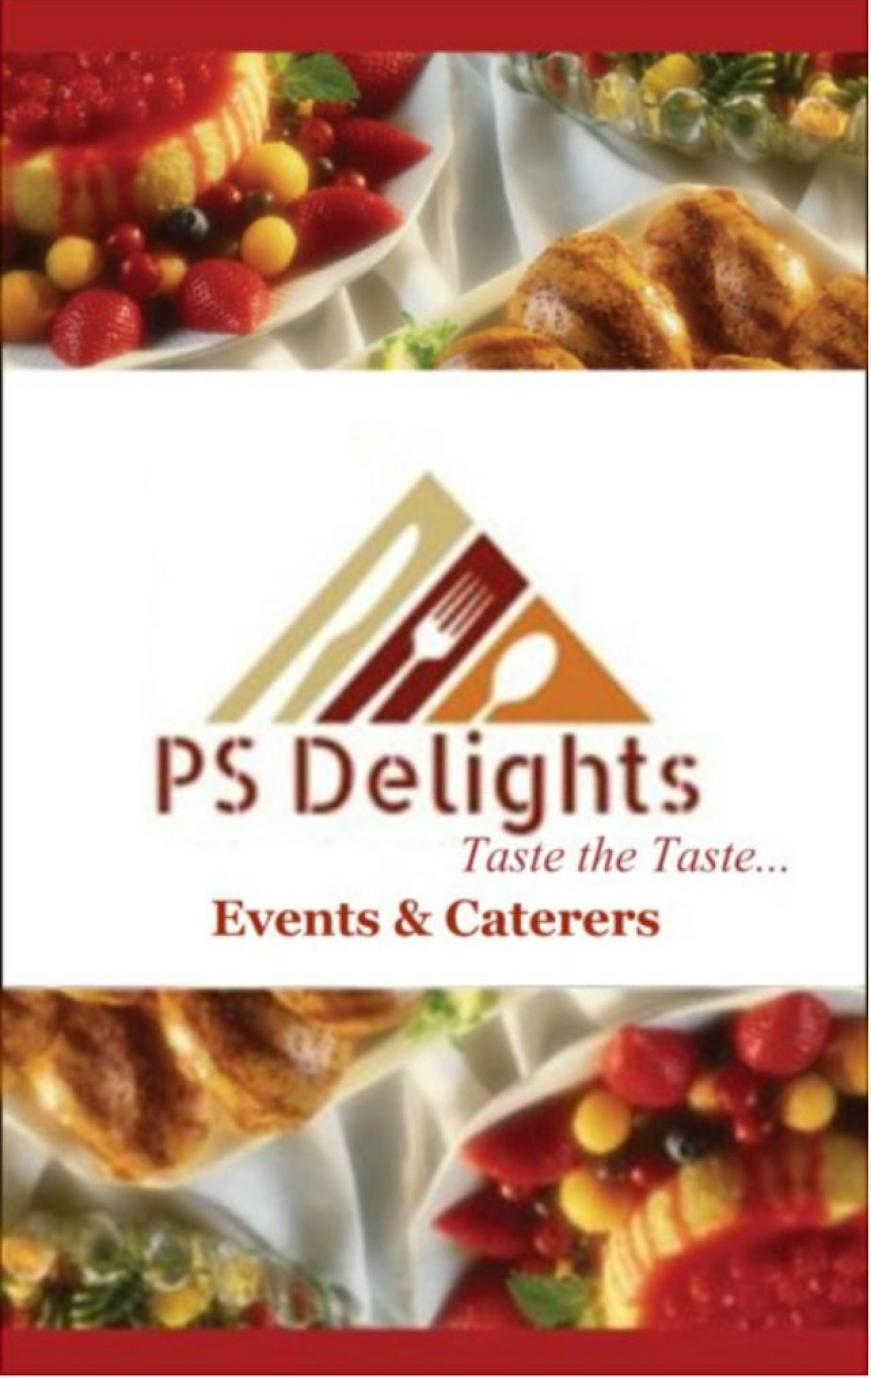 PS Delights